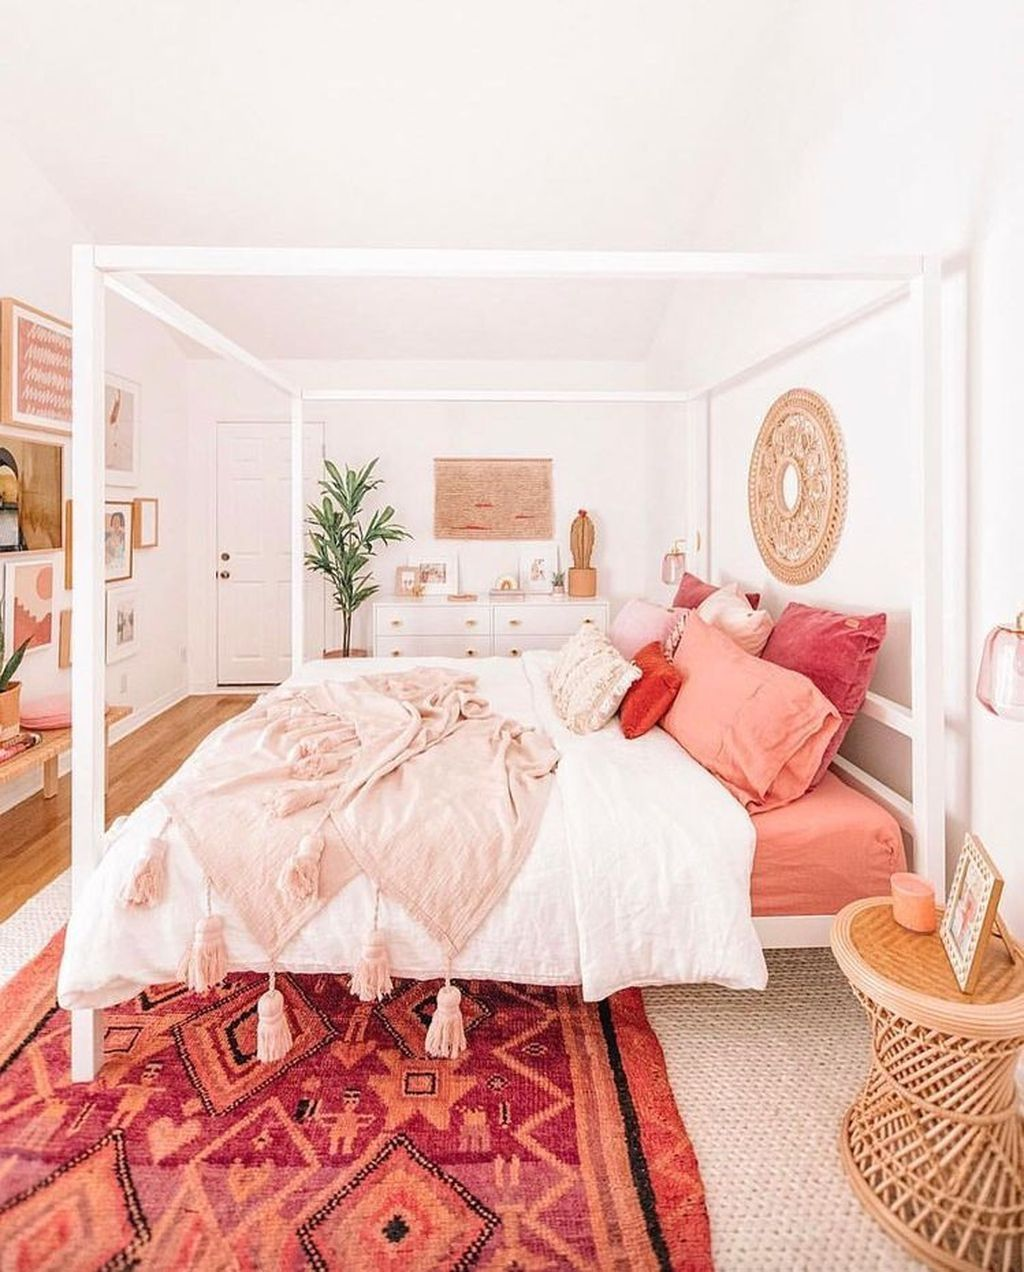 50 Make Your Bedroom More Romantic With These Romantic